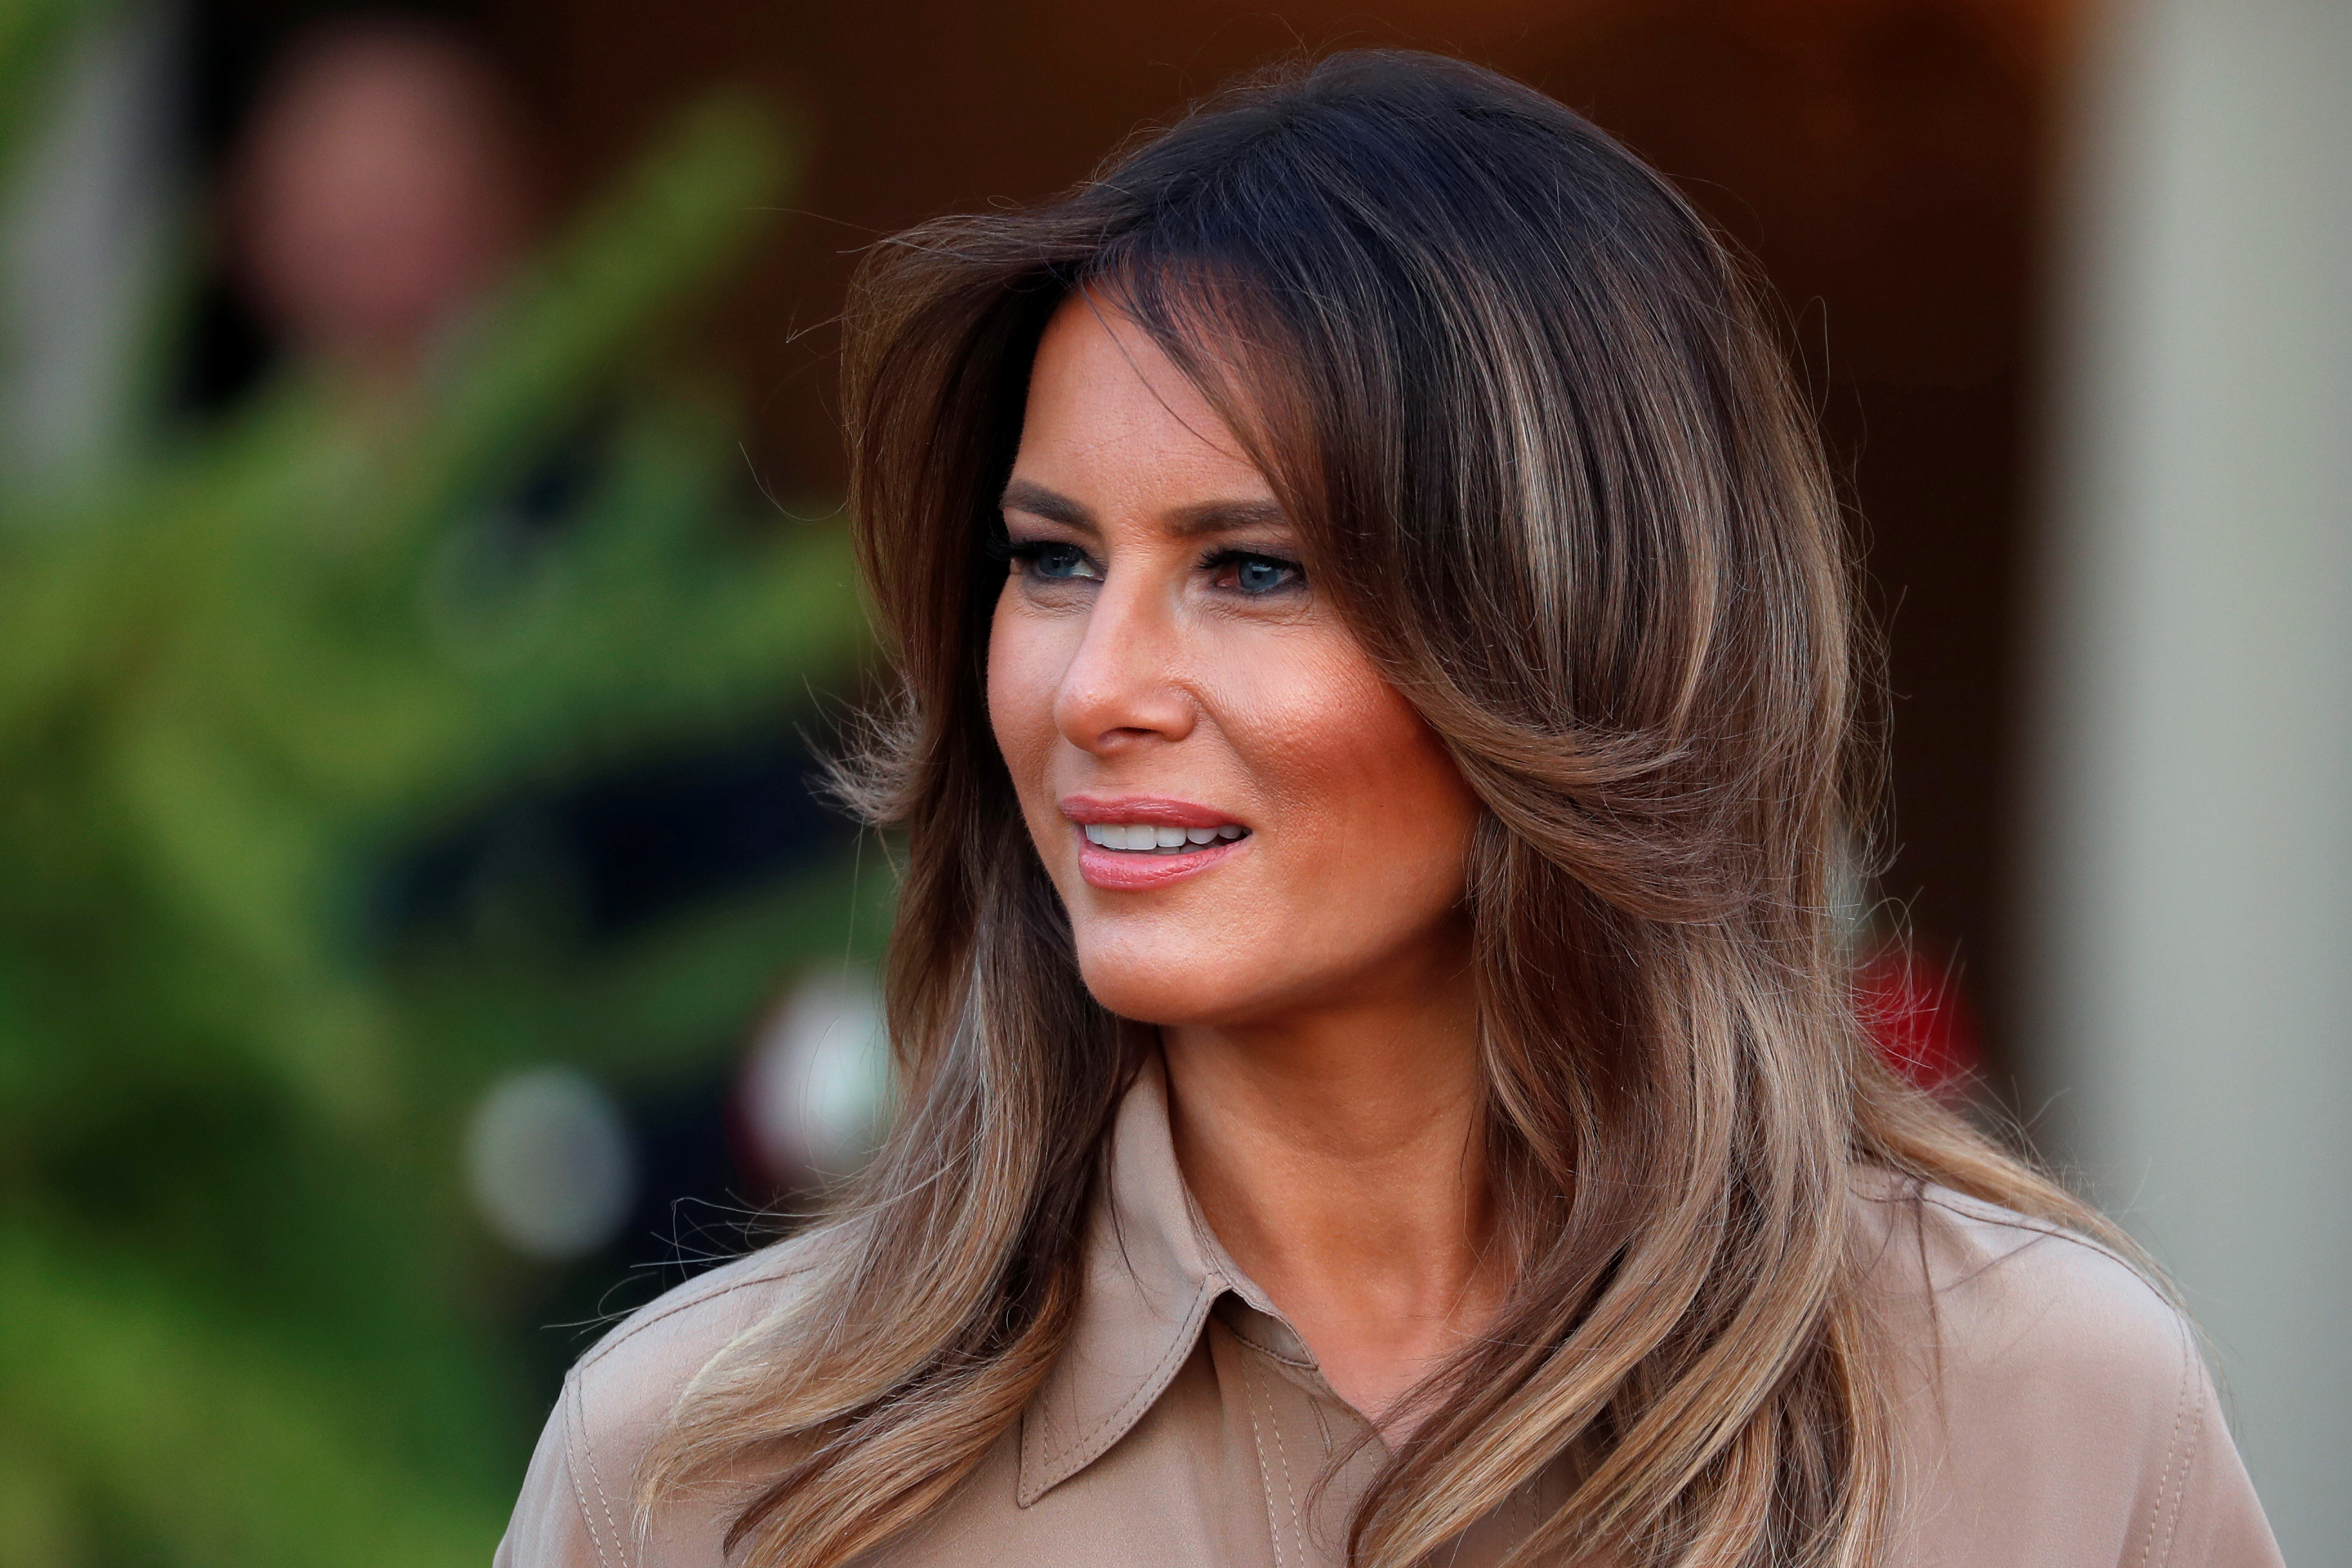 U.S. First Lady Melania Trump is pictured as she arrives at the State House in Lilongwe, Malawi, Oct. 4, 2018.